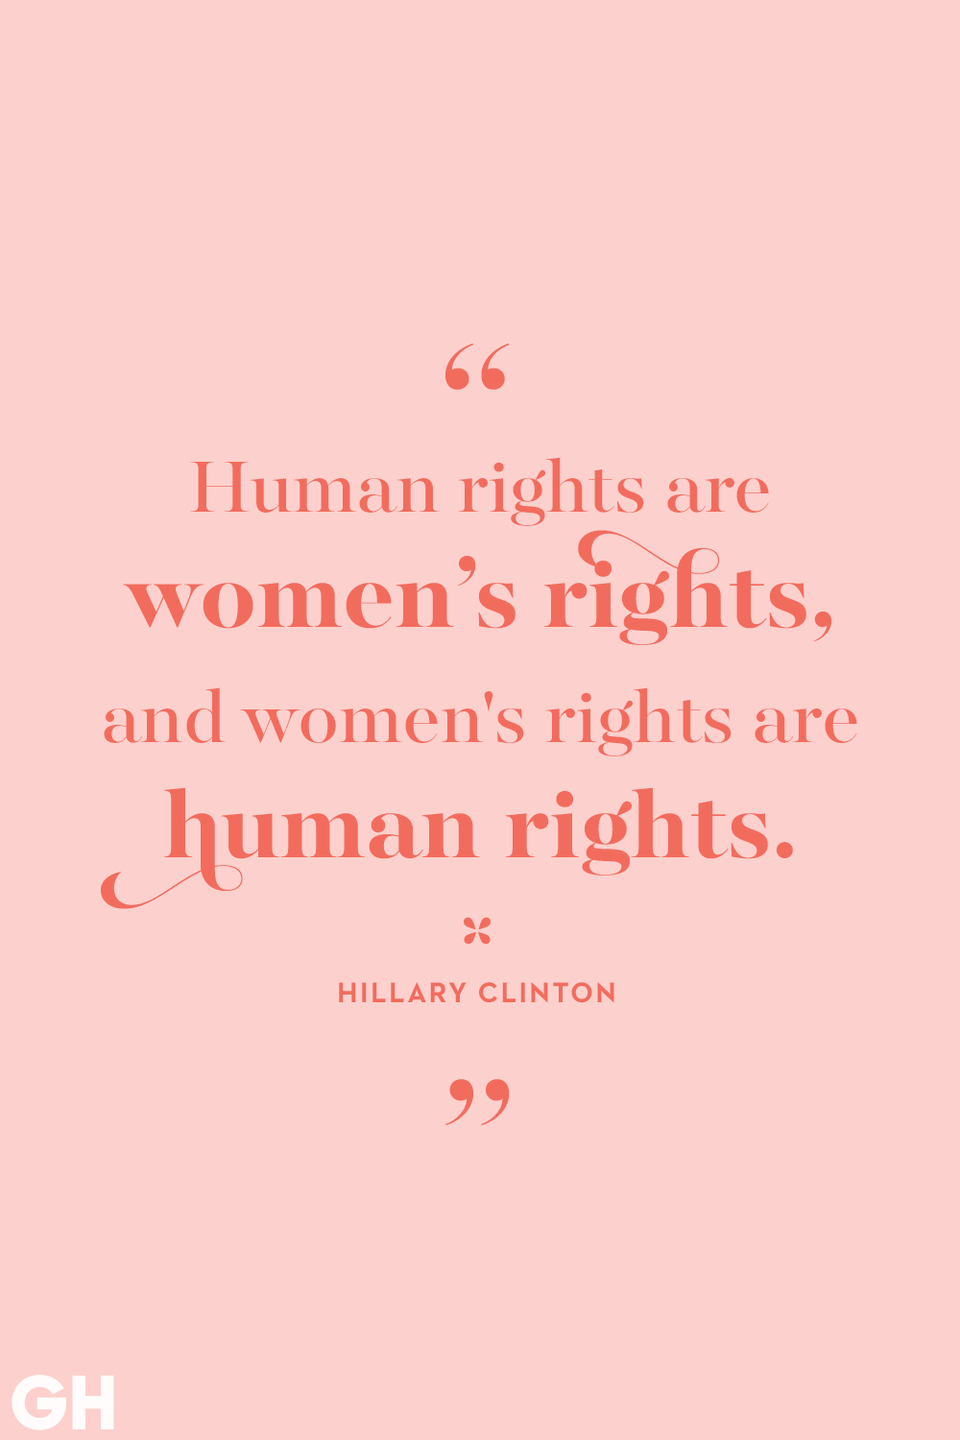 <p>Human rights are women's rights, and women's rights are human rights.</p>